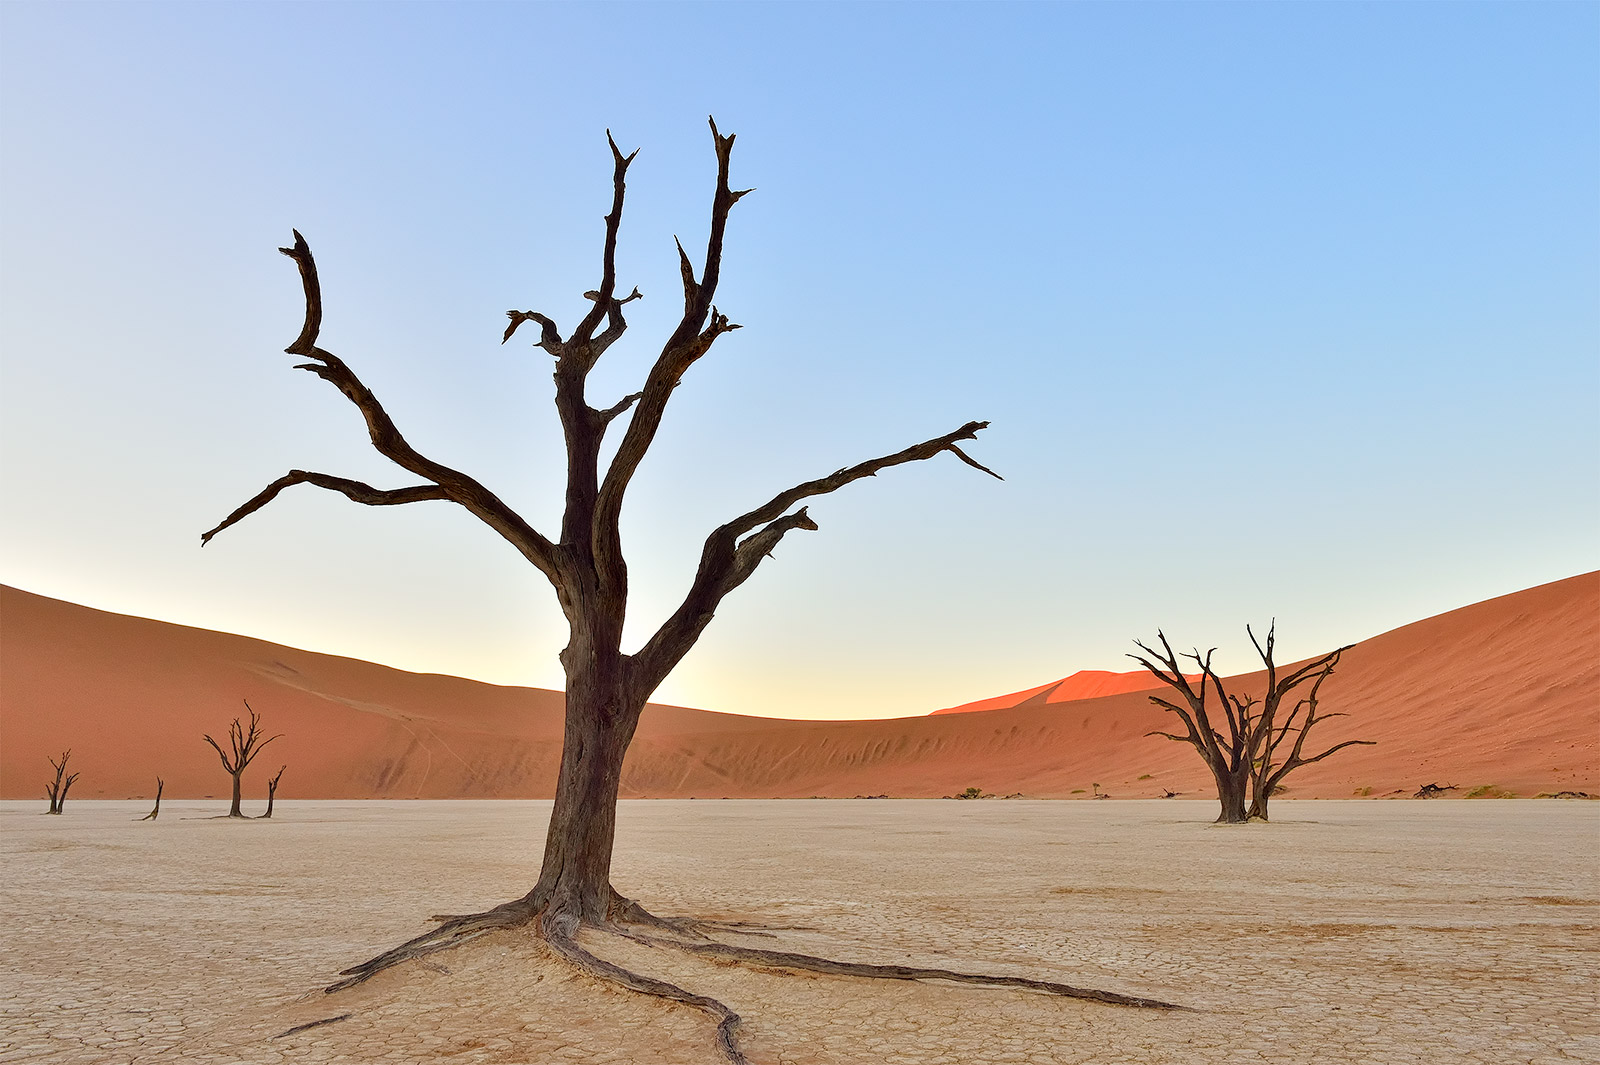 xsmp 20131001 7431 deadvlei tree xsmp 20131001 7475 namibia deadvlei xsmp 20131001 8088 startrail sossus dune lodge xsmp 20131002 8093 brown hyena